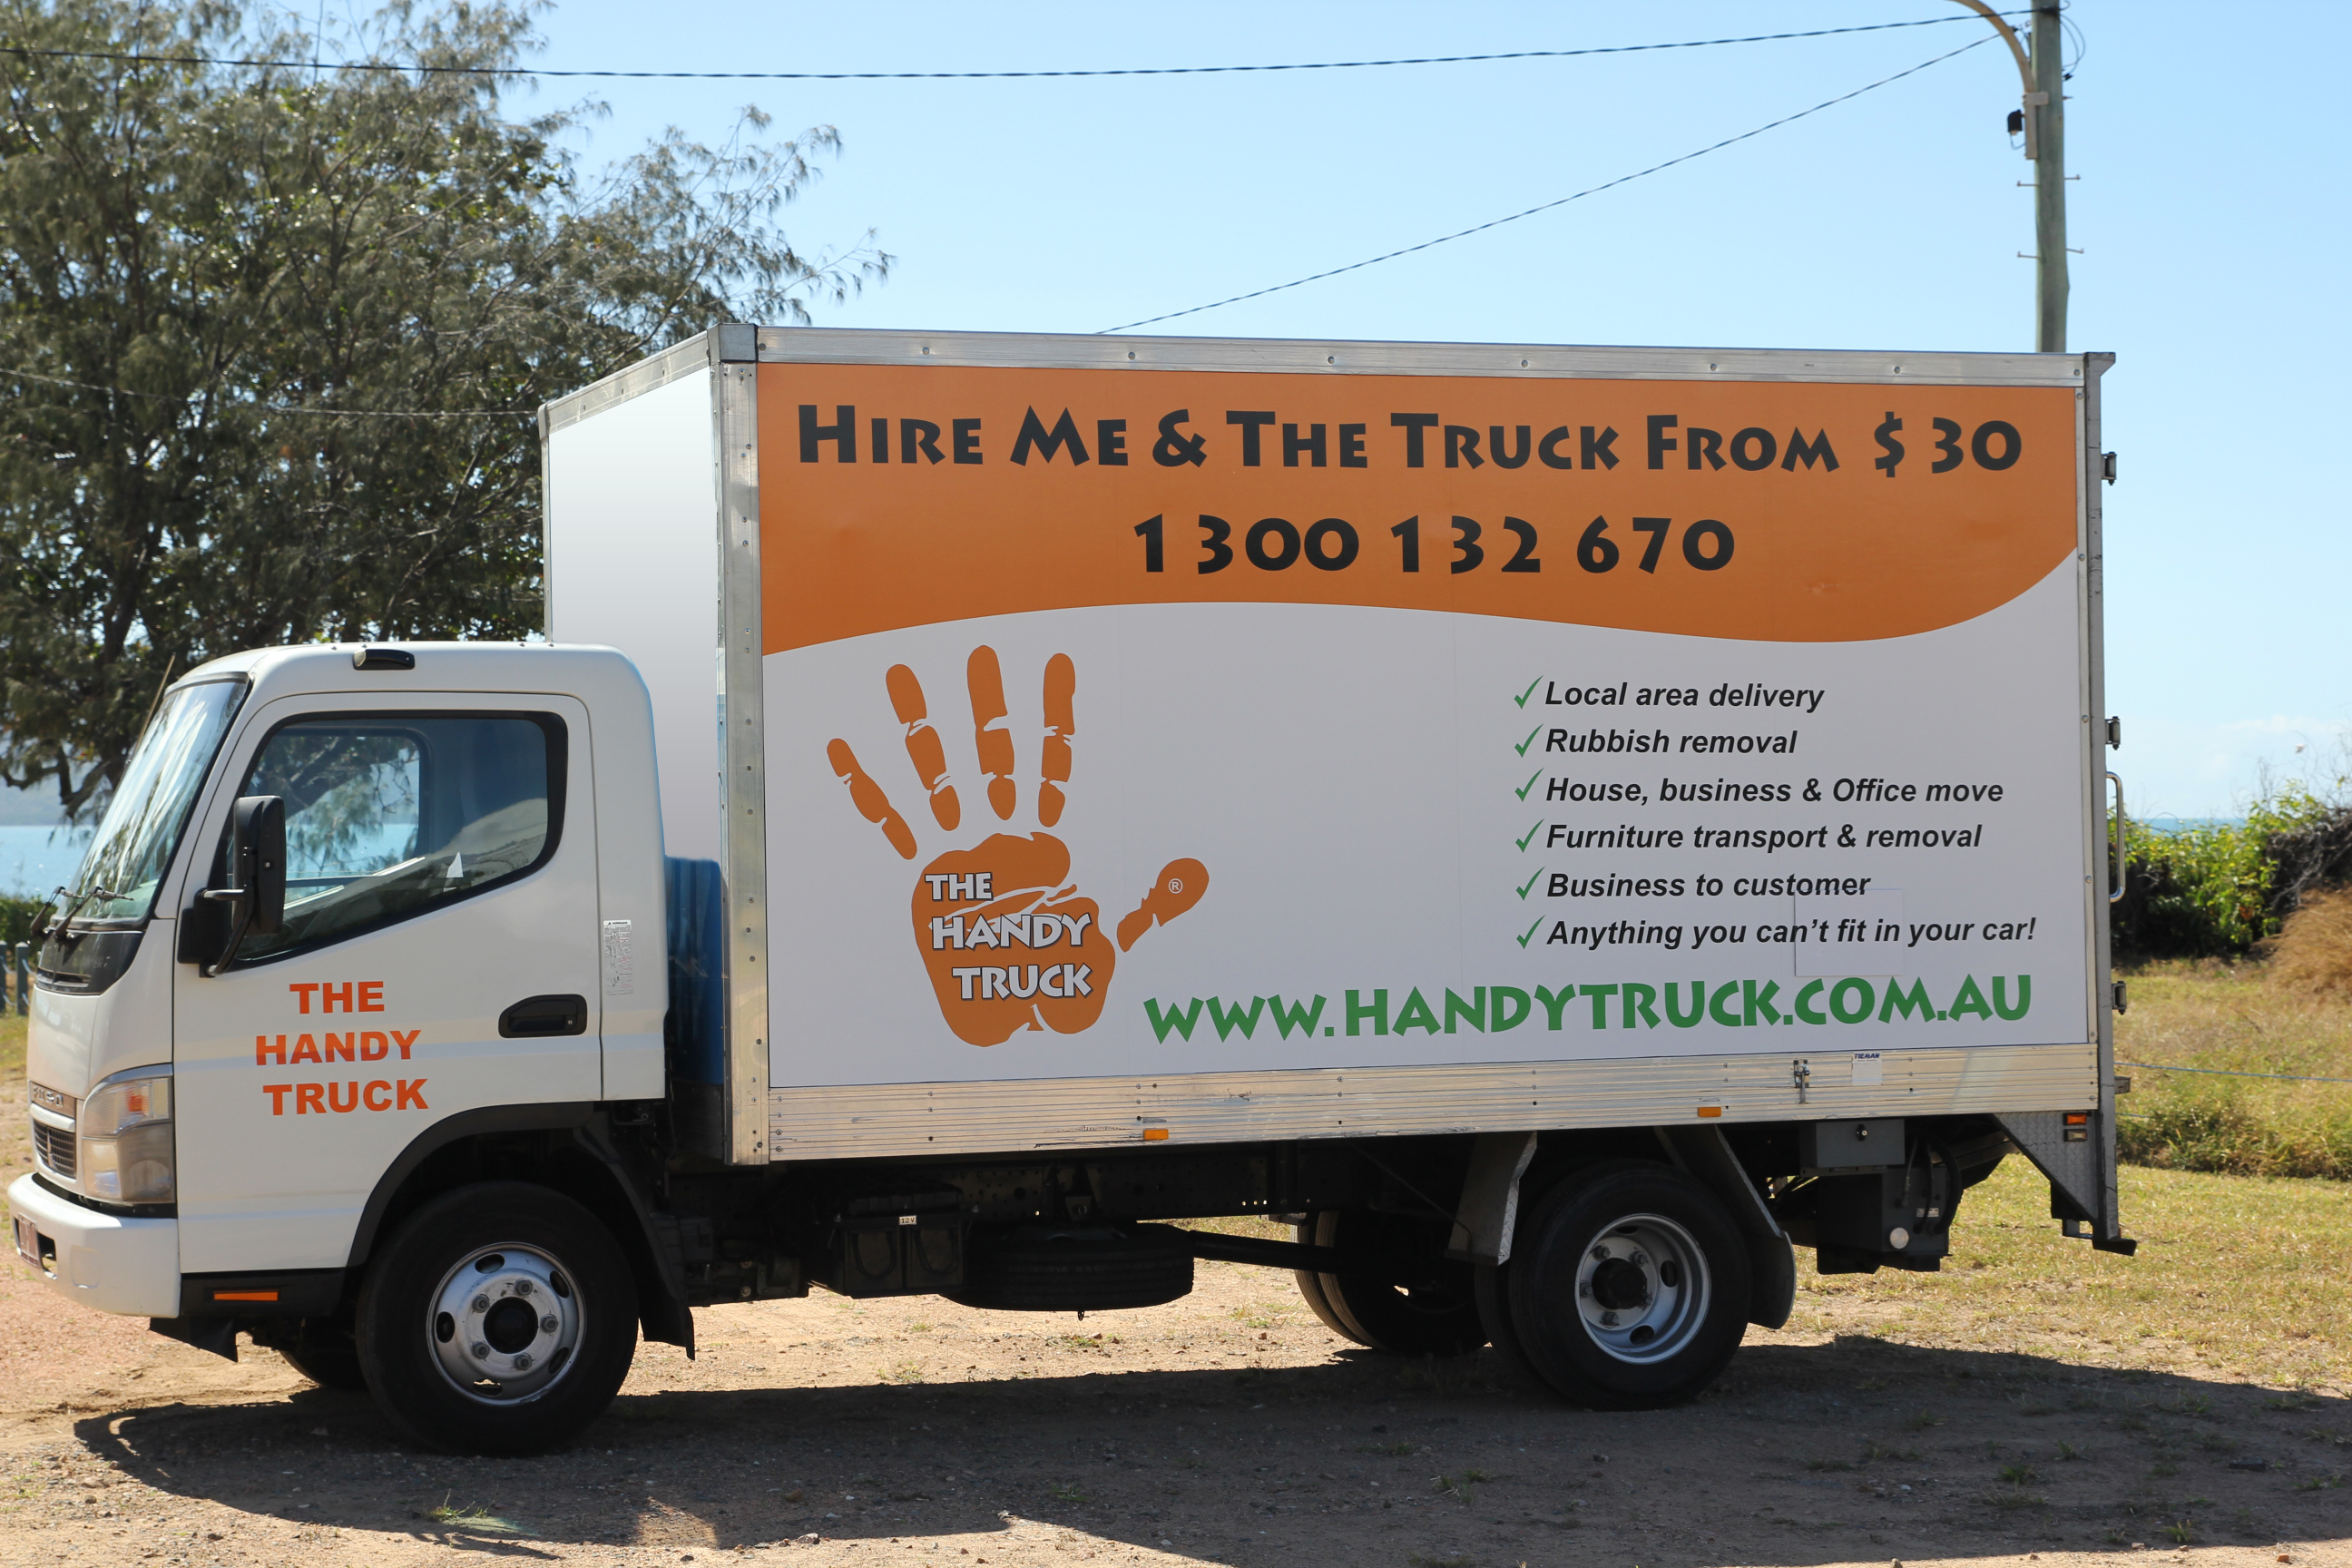 Your delivery and removalist service in Carlton